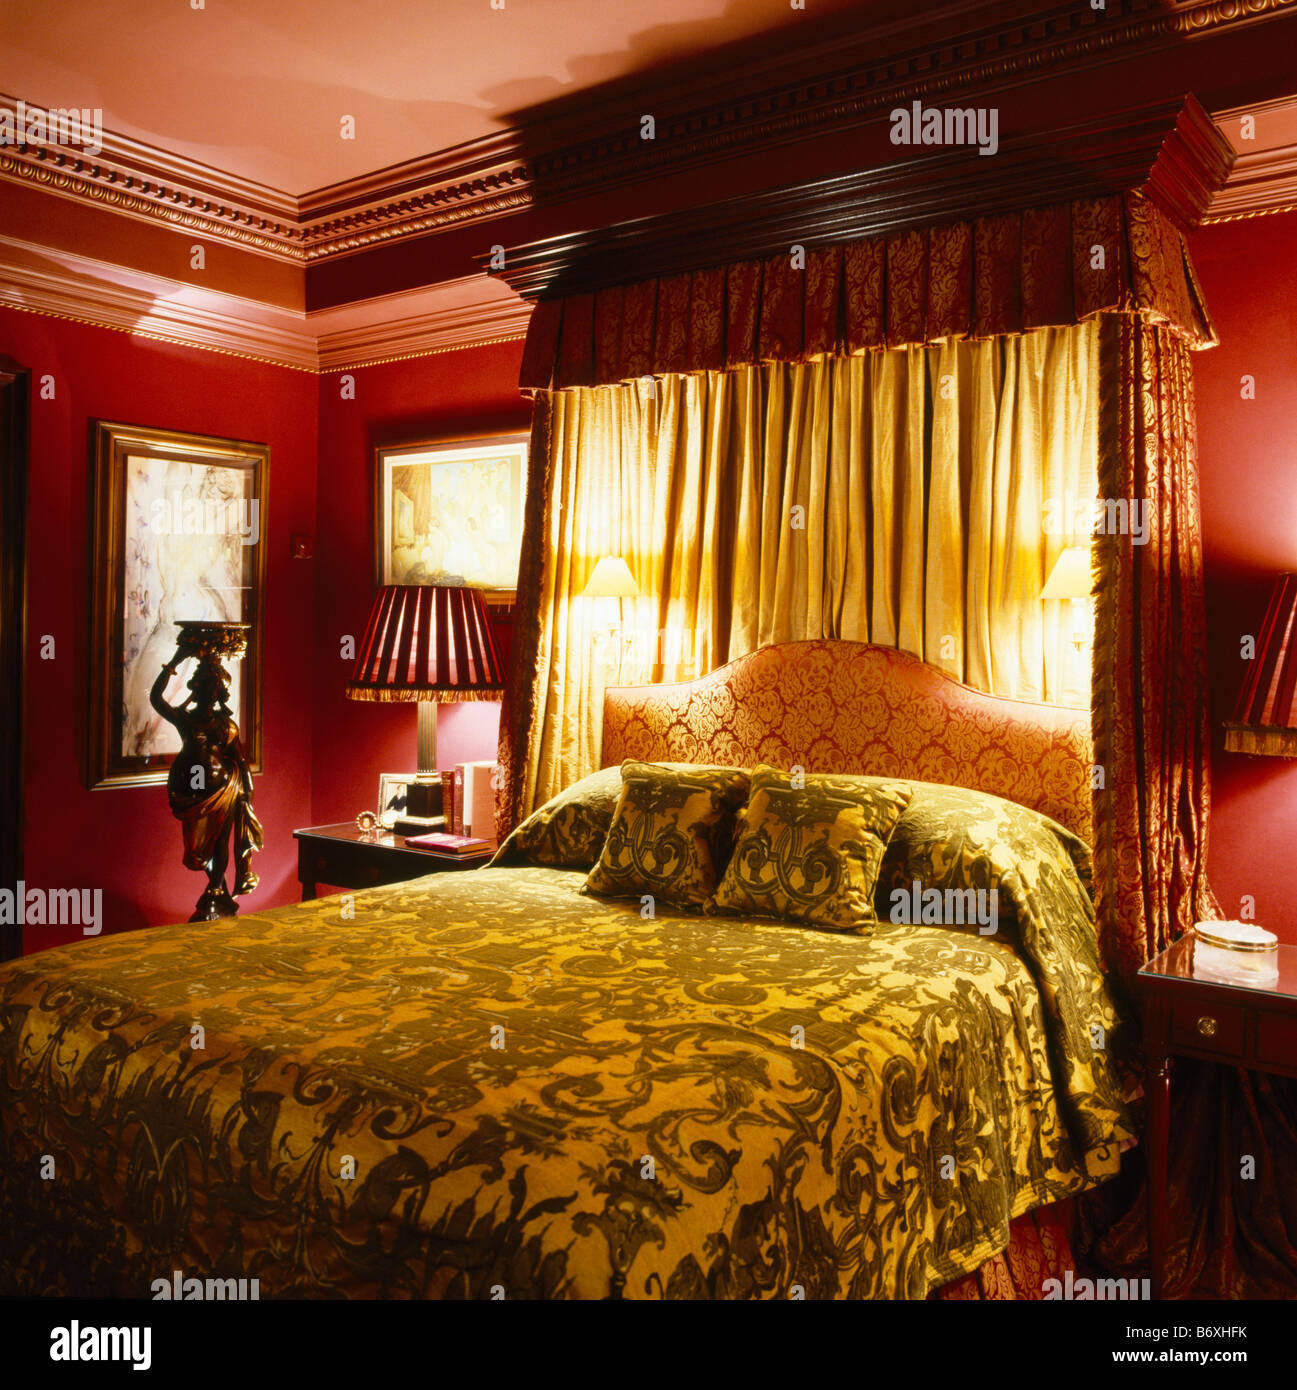 Brown Walls In Bedroom Velvet Bedcover On Half Tester Bed With Wall Lights And